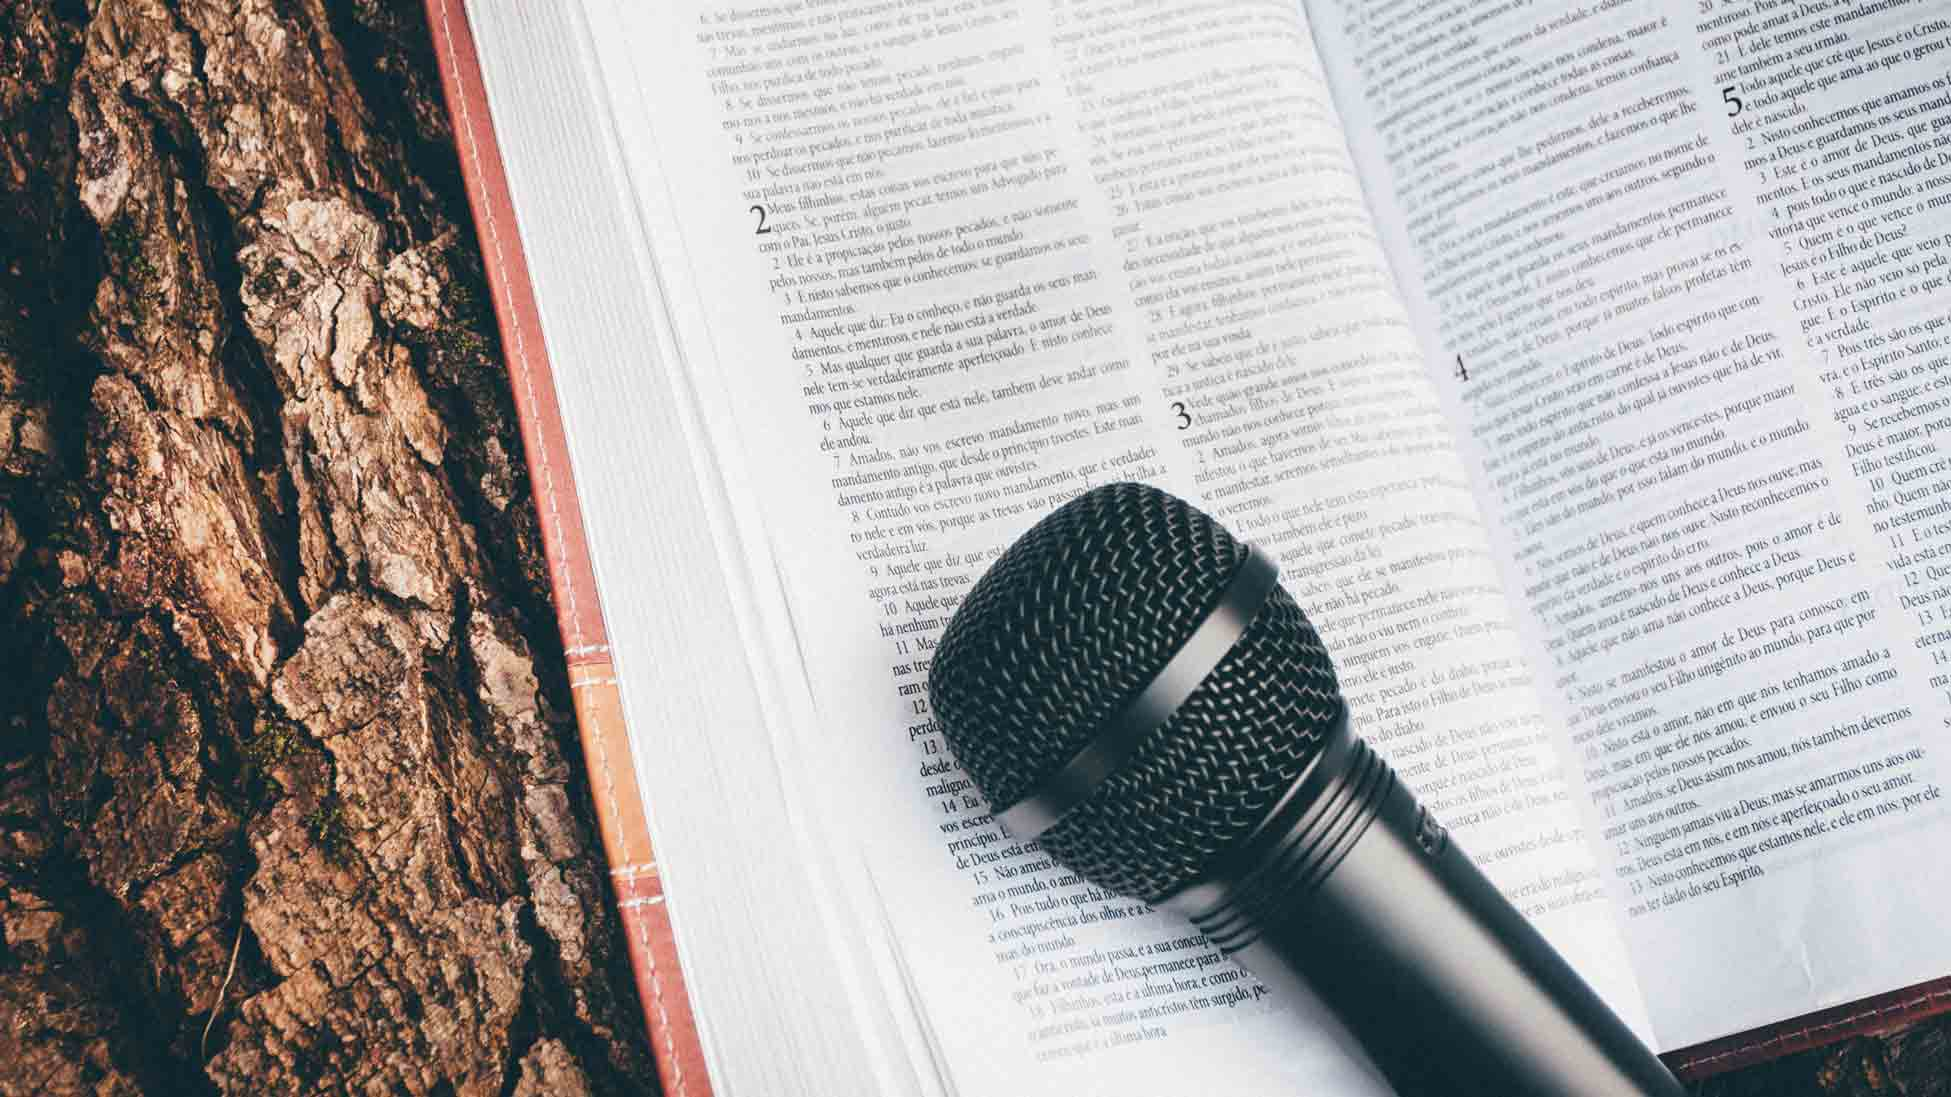 Microphone resting on pages of book